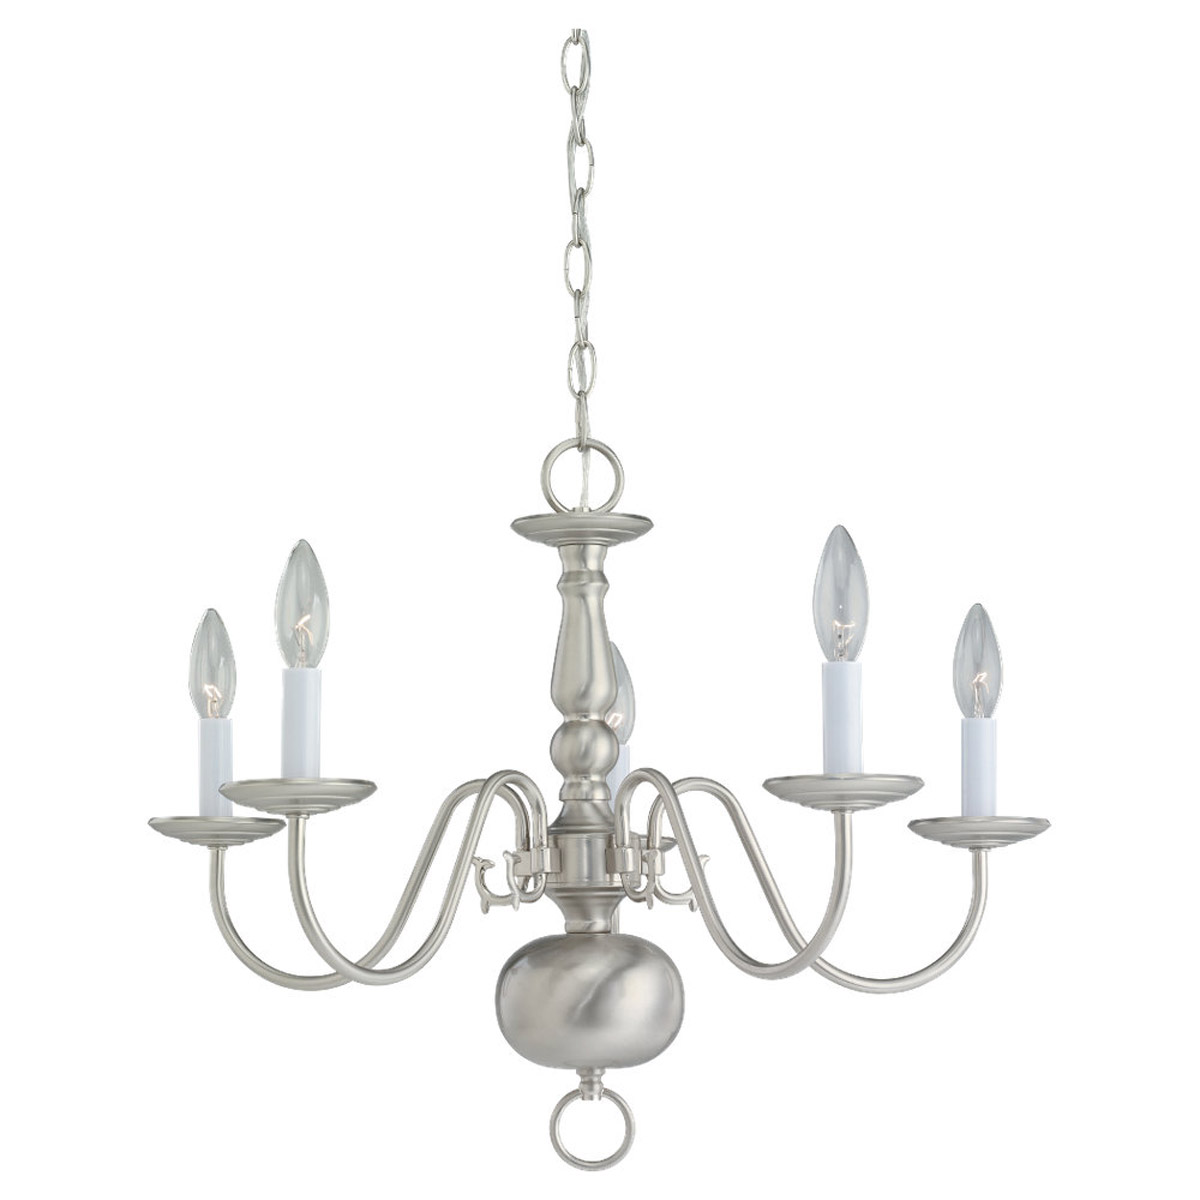 Sea Gull Lighting Traditional 5 Light Chandelier in Brushed Nickel 3410-962